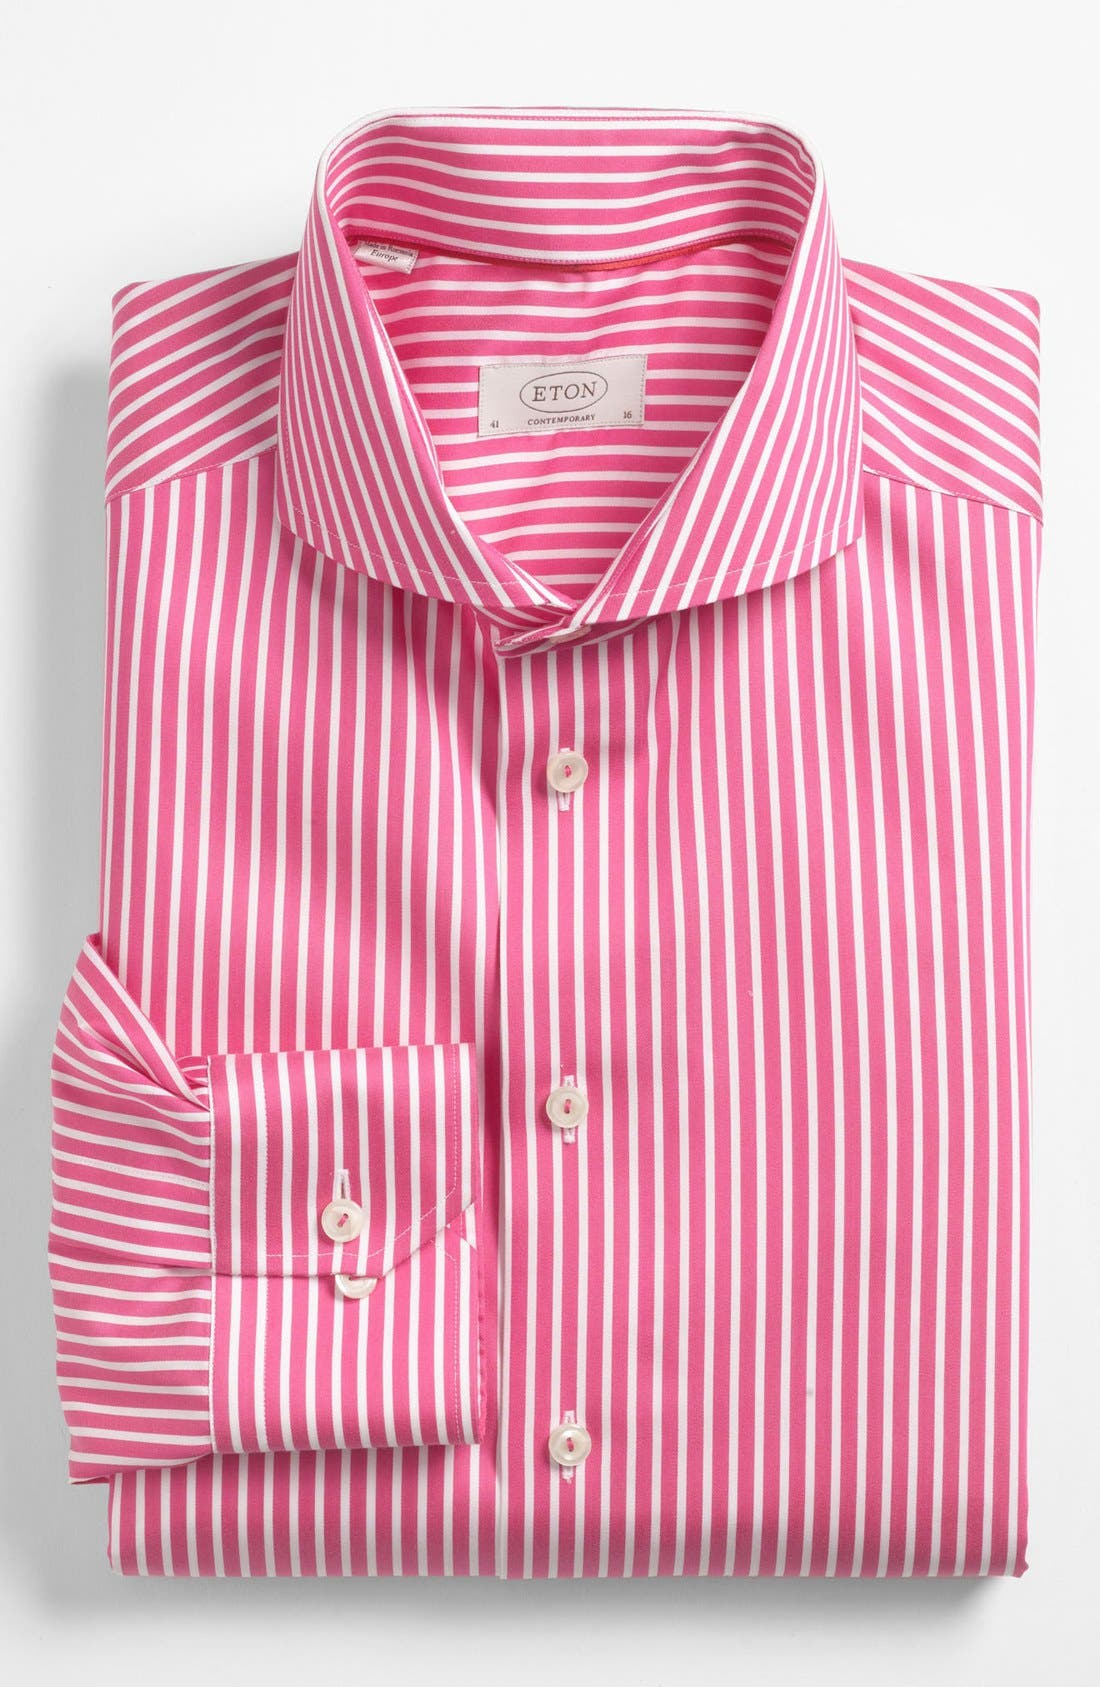 Main Image - Eton Contemporary Fit Dress Shirt